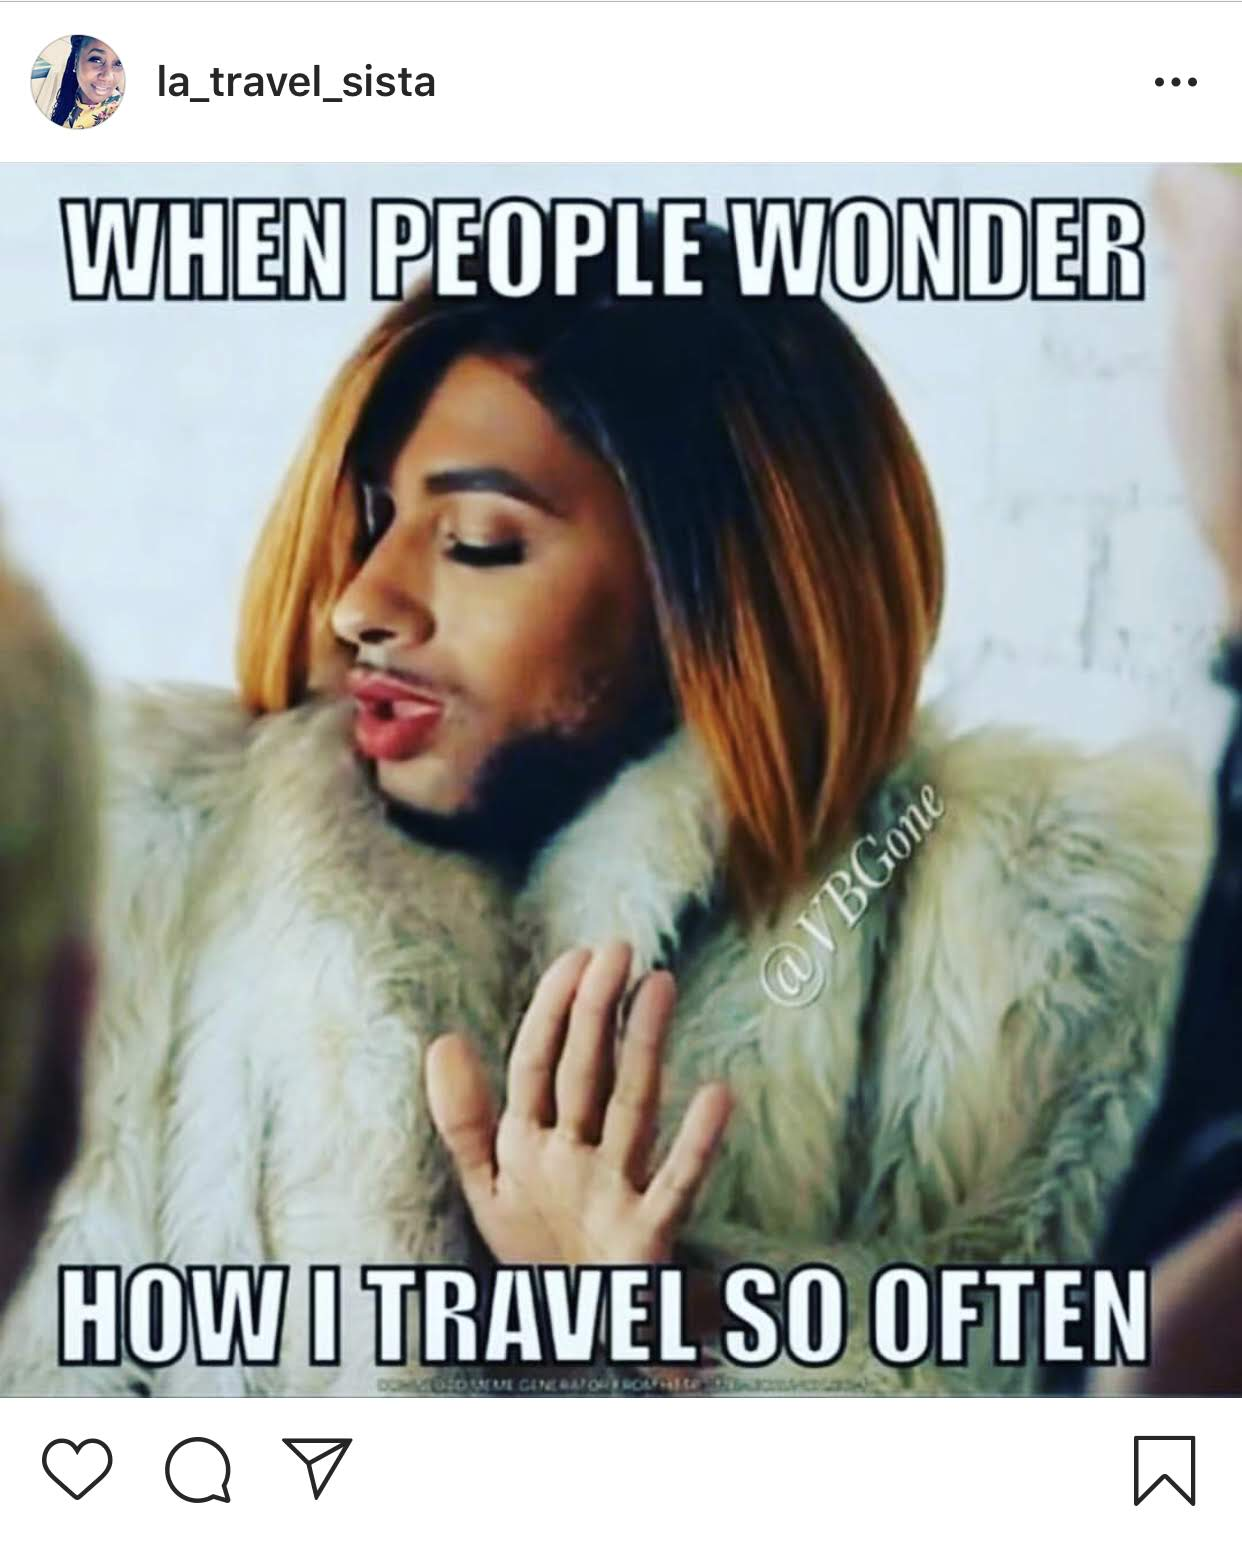 20 Funny Travel Memes You Gotta See! – 2girlswhotravel